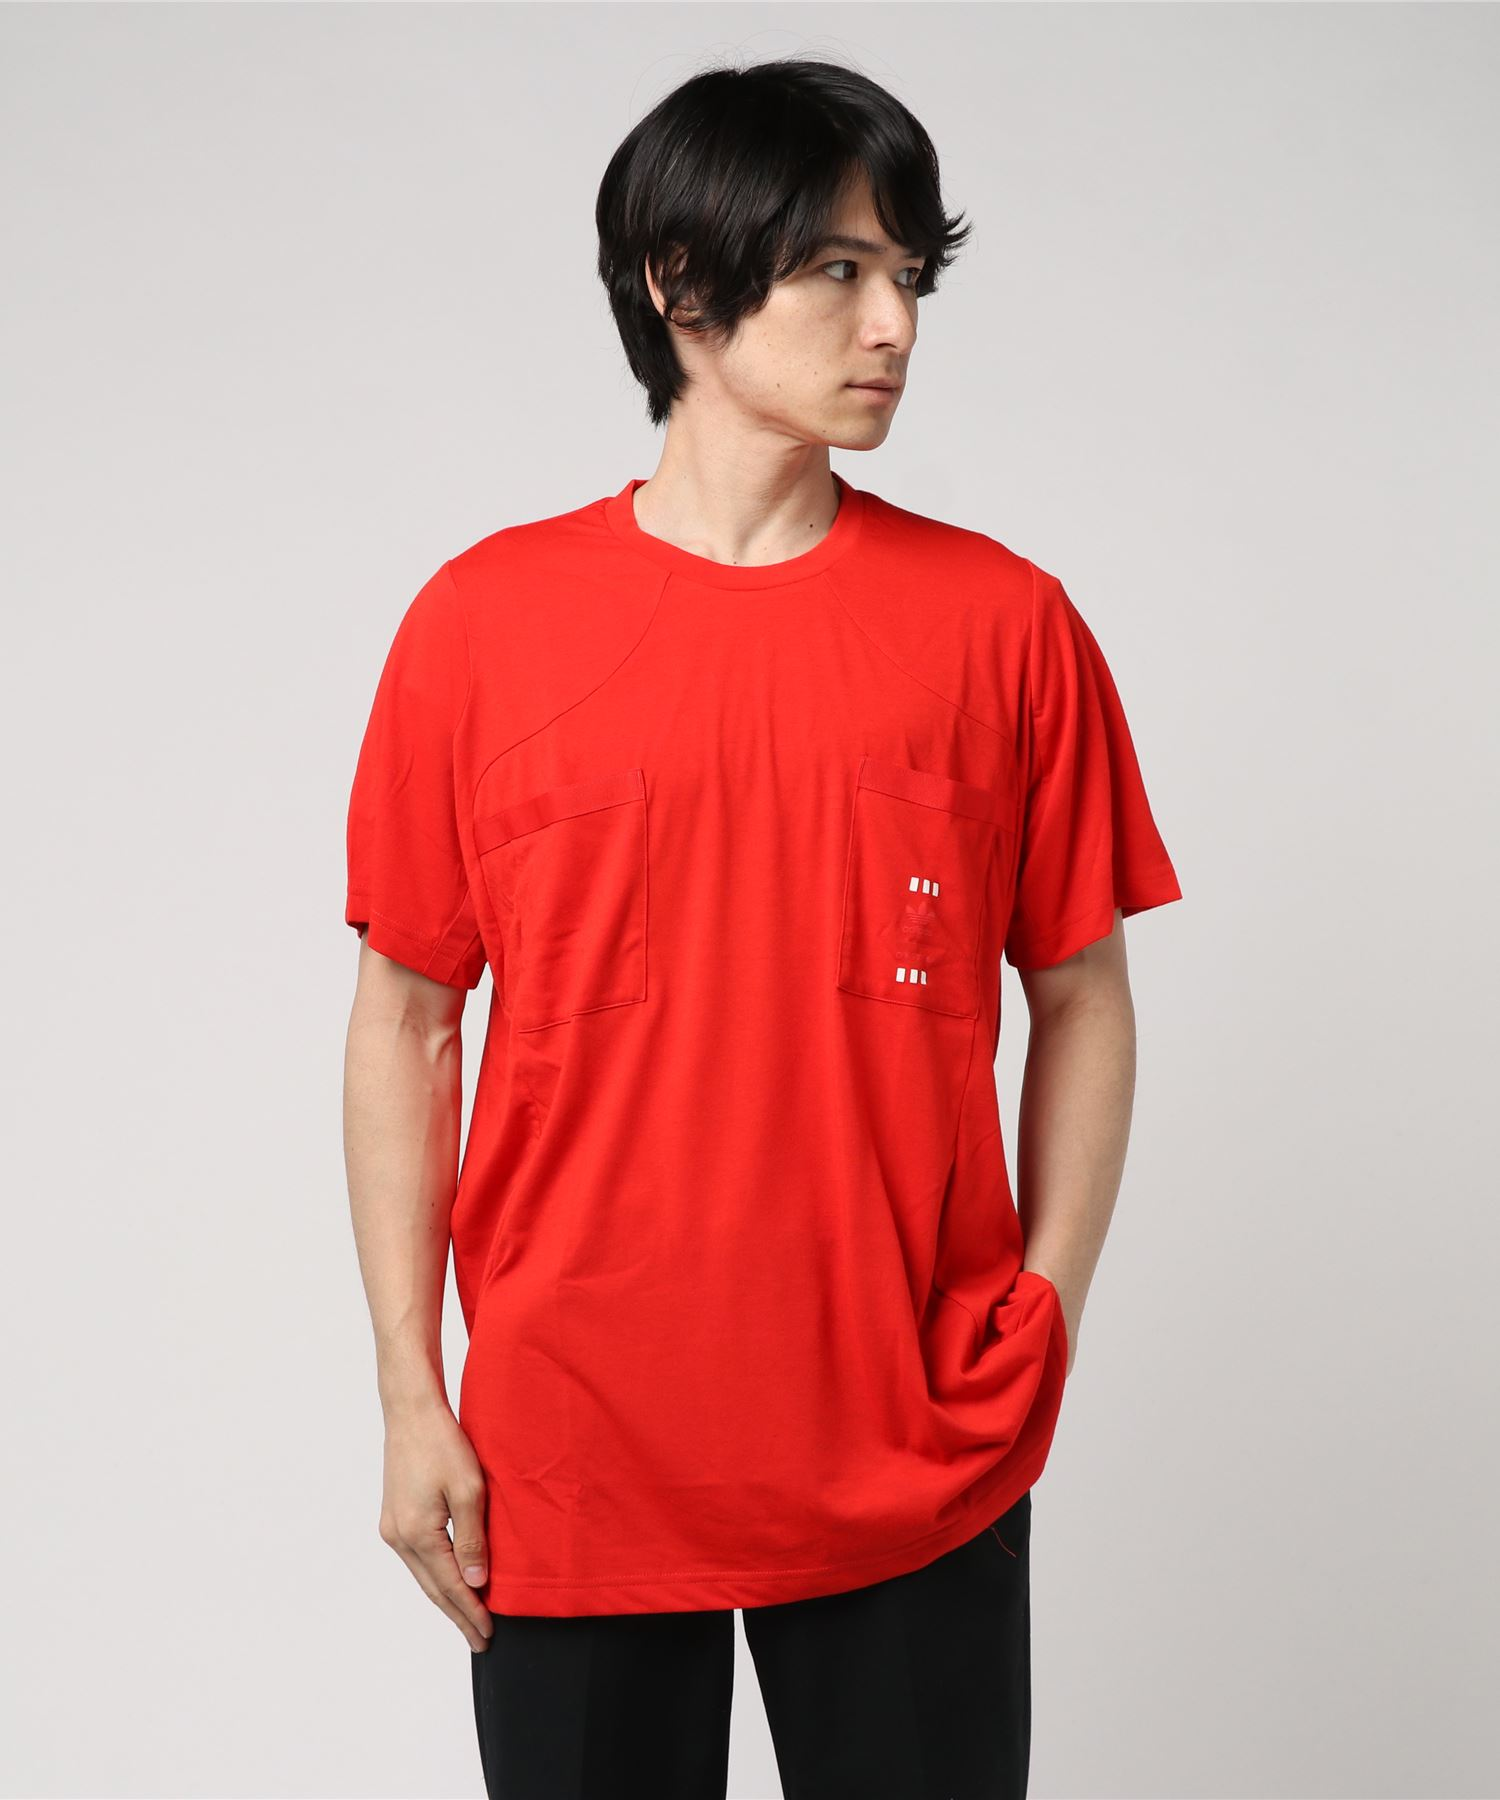 adidas Originals by Oyster Holdings 72HR SS TEE (DU7891)